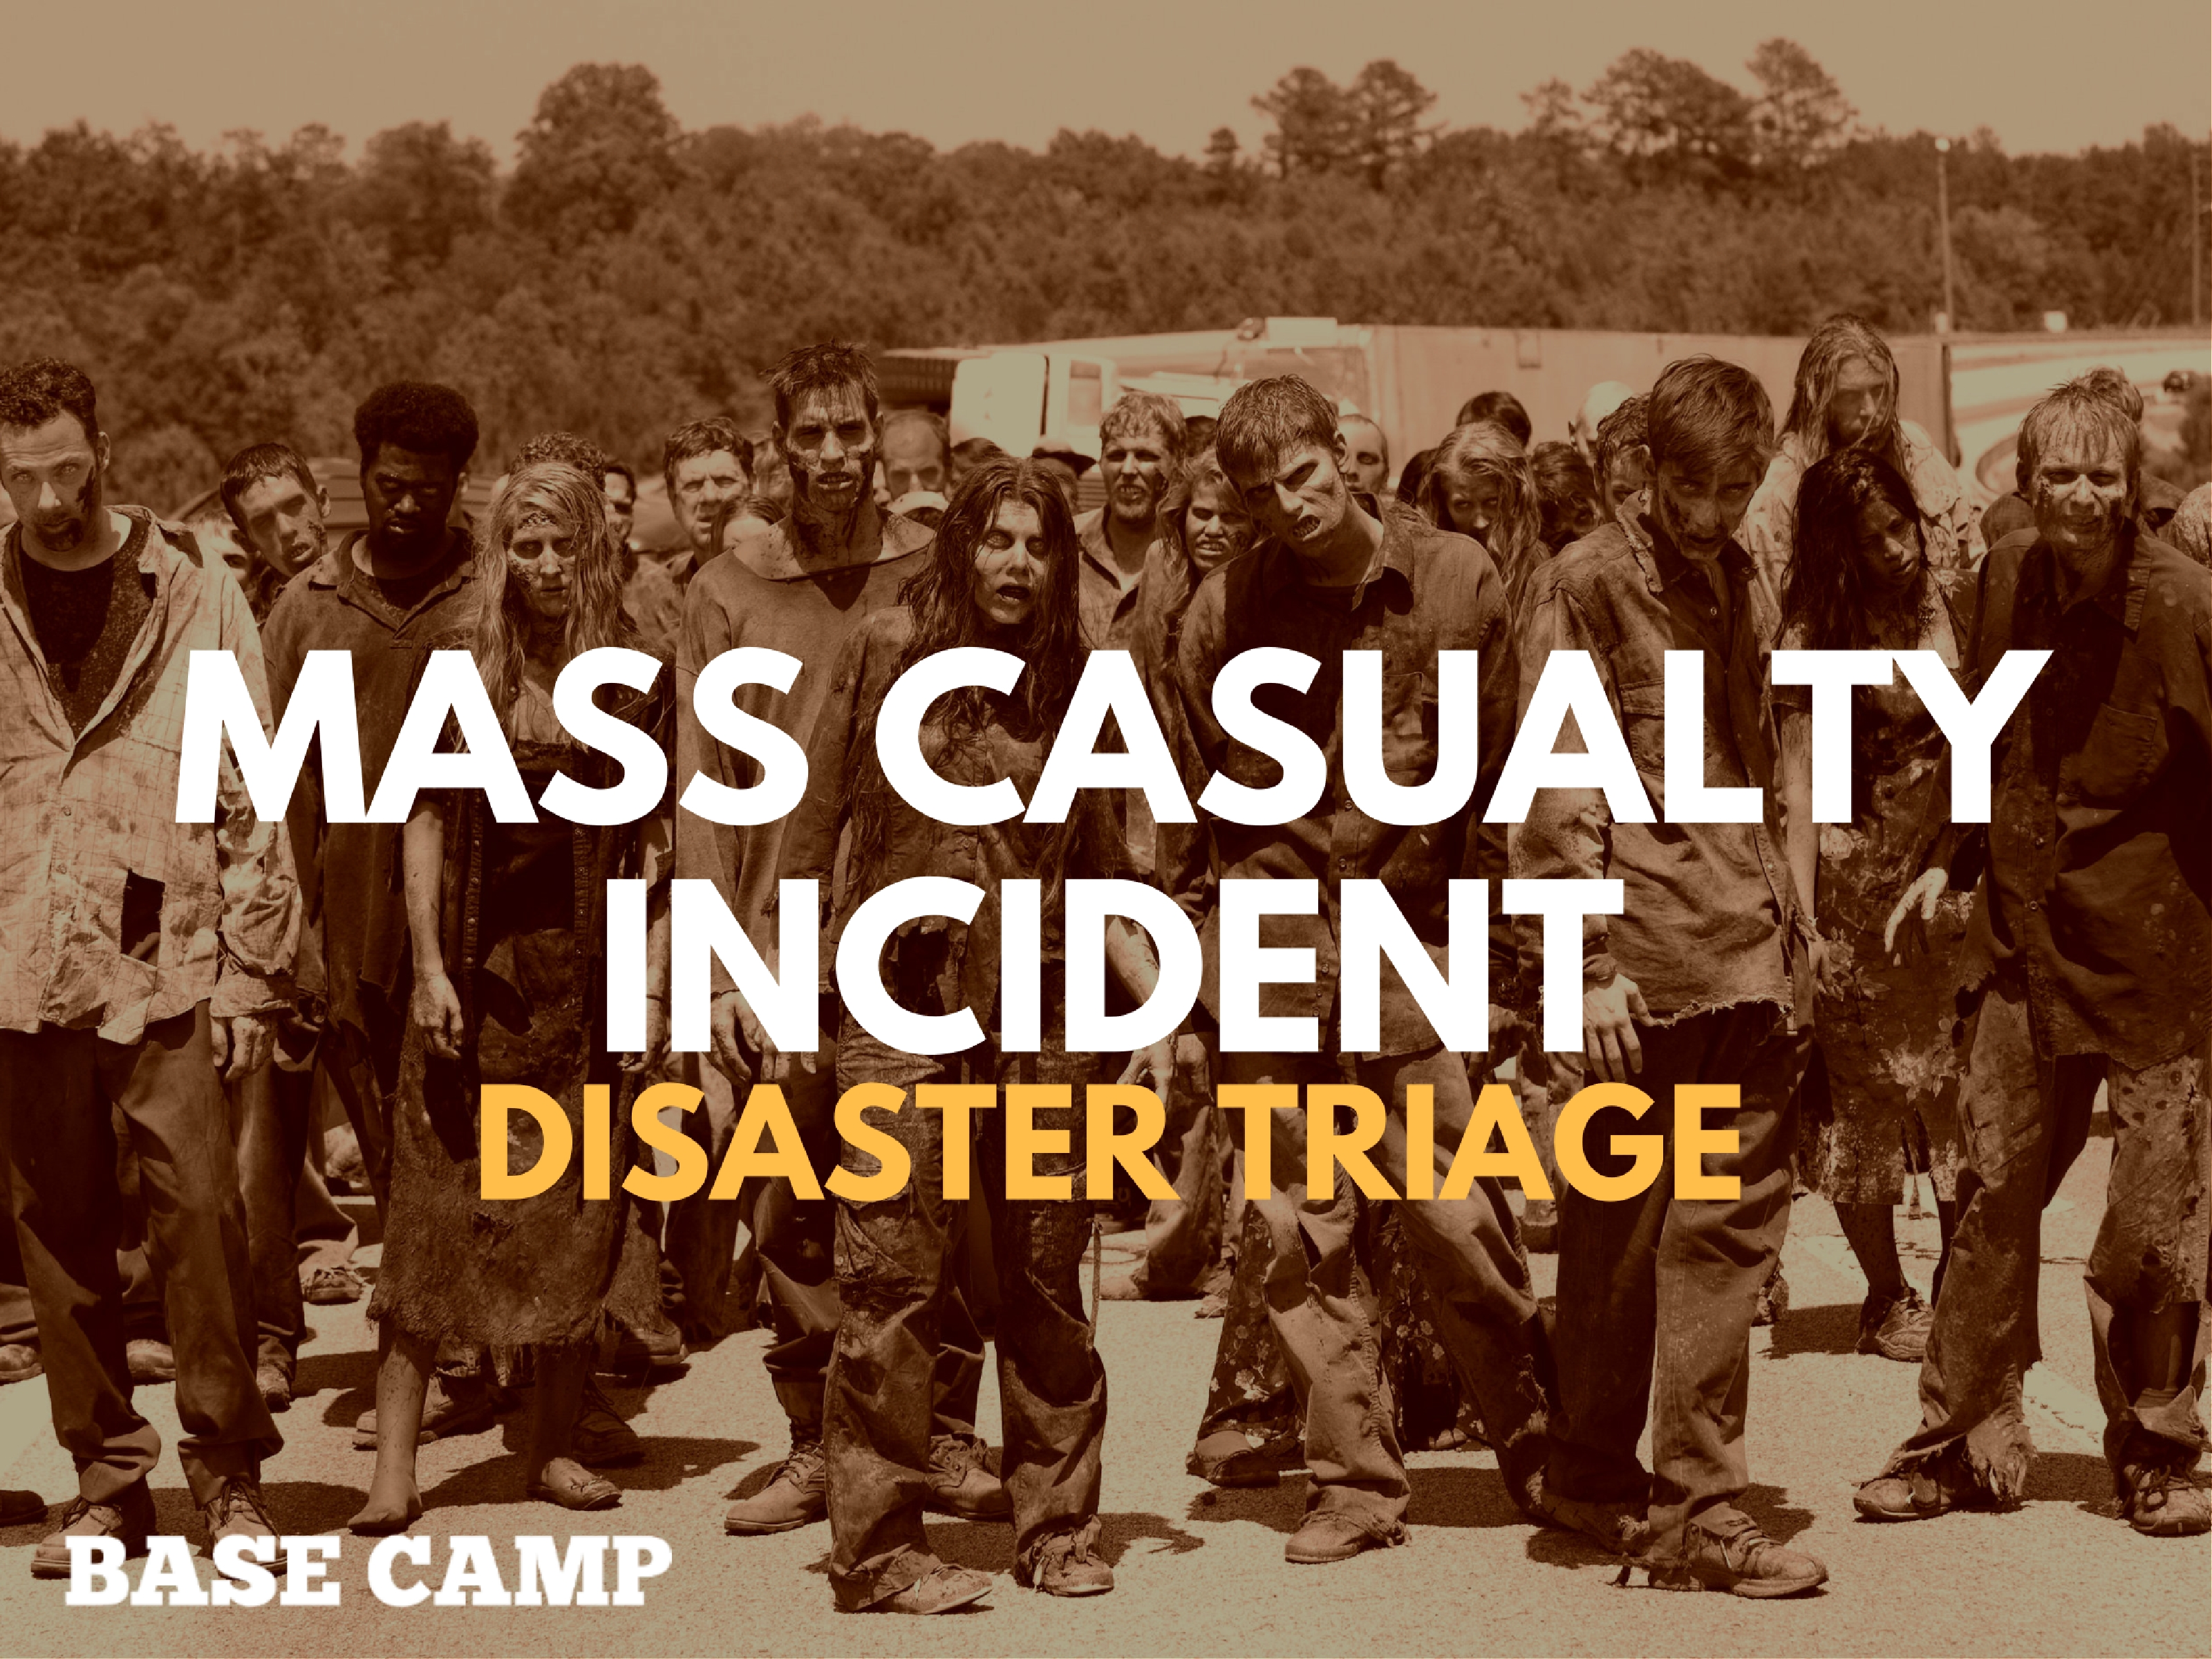 Mass Casualty Incident Disaster Triage